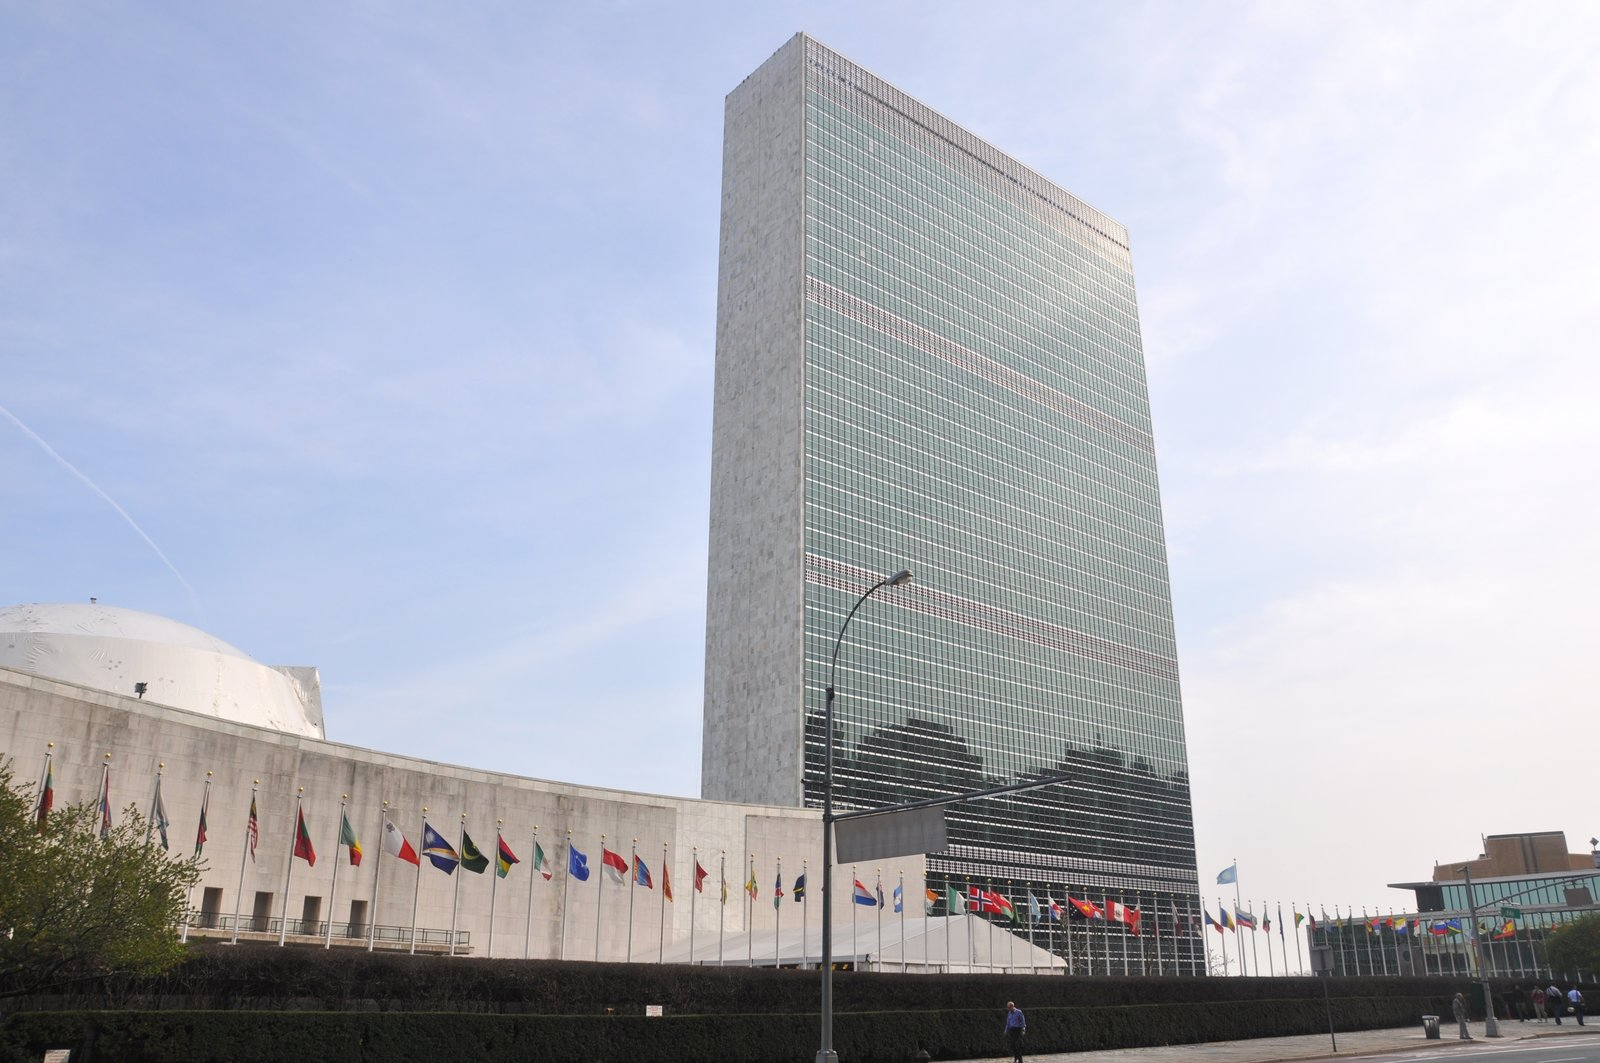 October 24 Building of the Day: United Nations Capital Master Plan  HLW International, Einhorn Yaffee Prescott, R.A. Heintges & Associates, Syska Hennessy Group, and Perkins + Will   Photo credit: UN Capital Master Plan   2013 Buildings of the Day